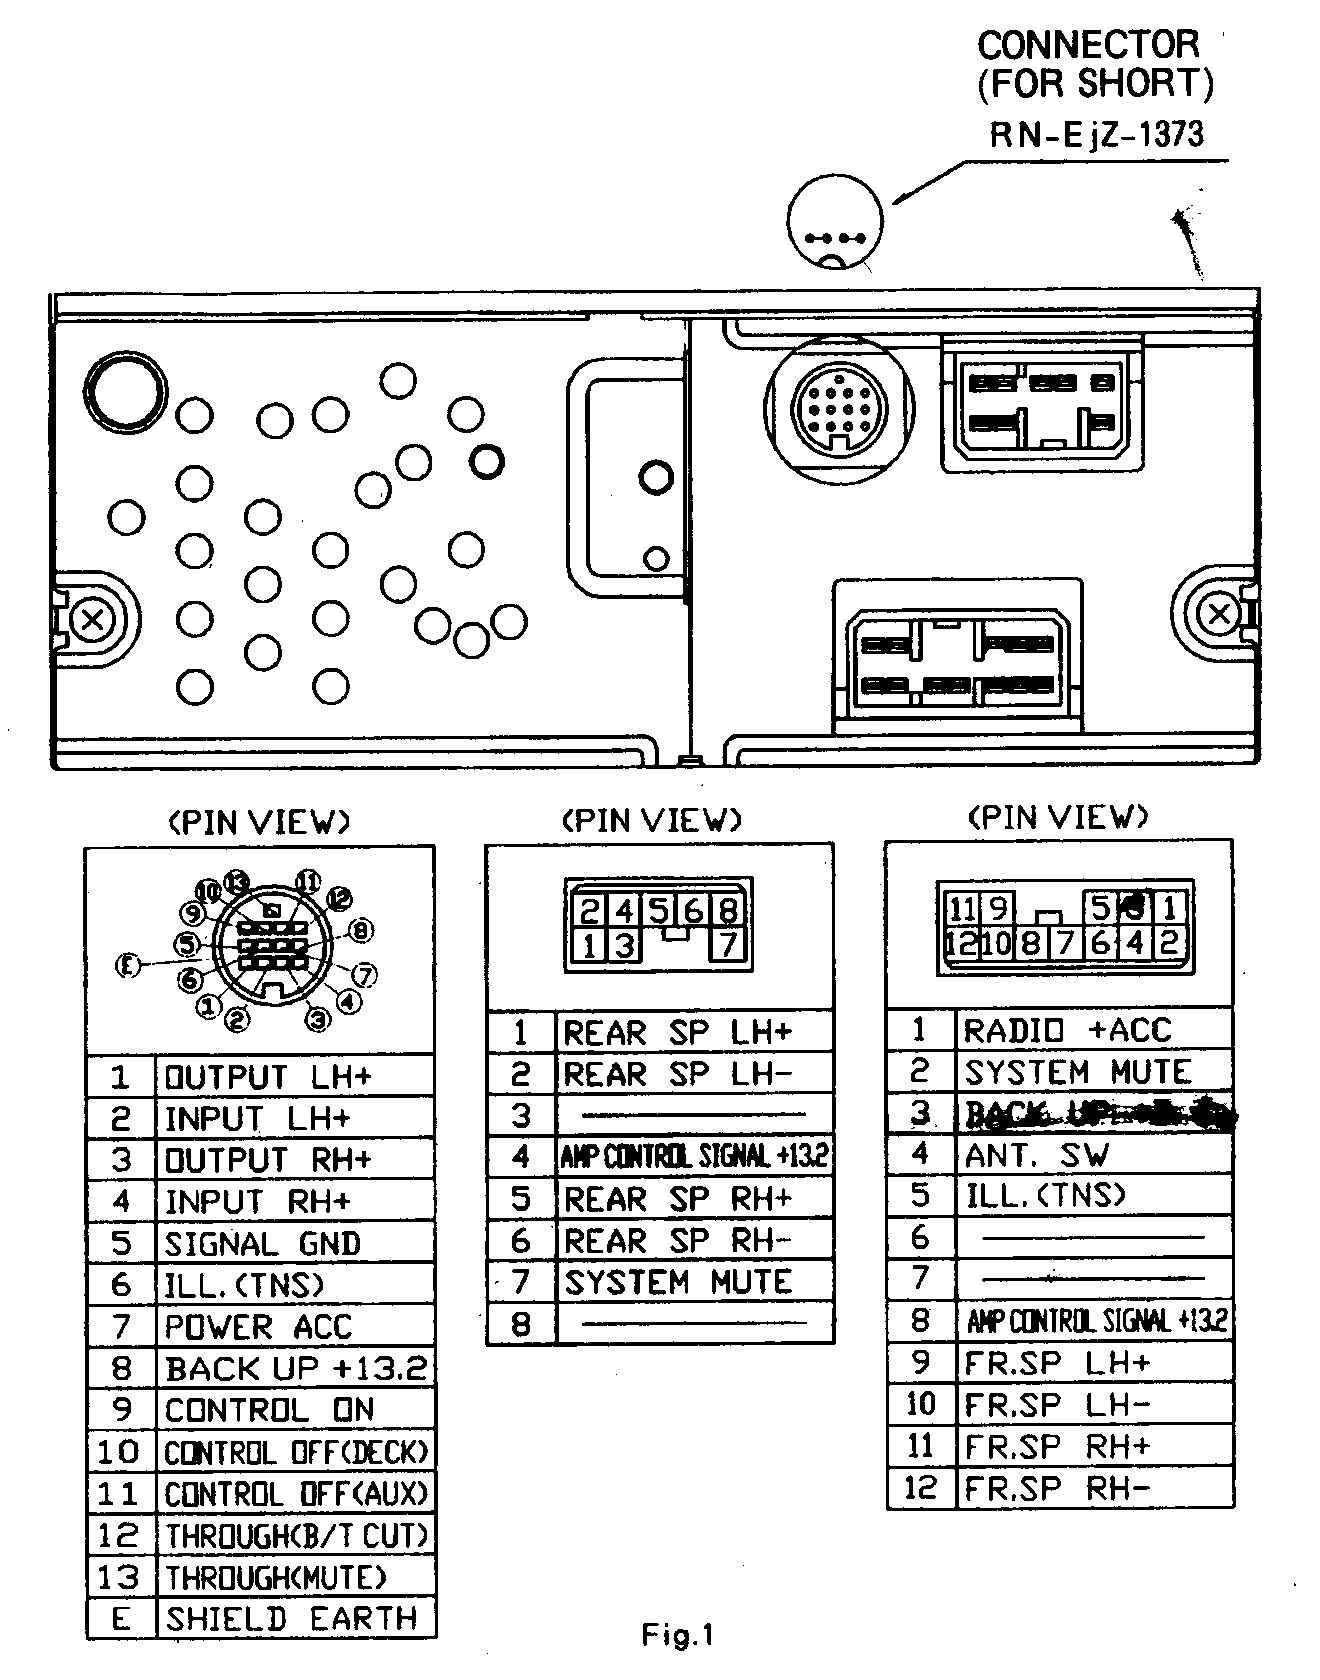 Sony Xplod Car Stereo Wiring Diagram Car with Detaleted Wiring and Factory Stereo Diagrams Wiring Diagram Of Sony Xplod Car Stereo Wiring Diagram